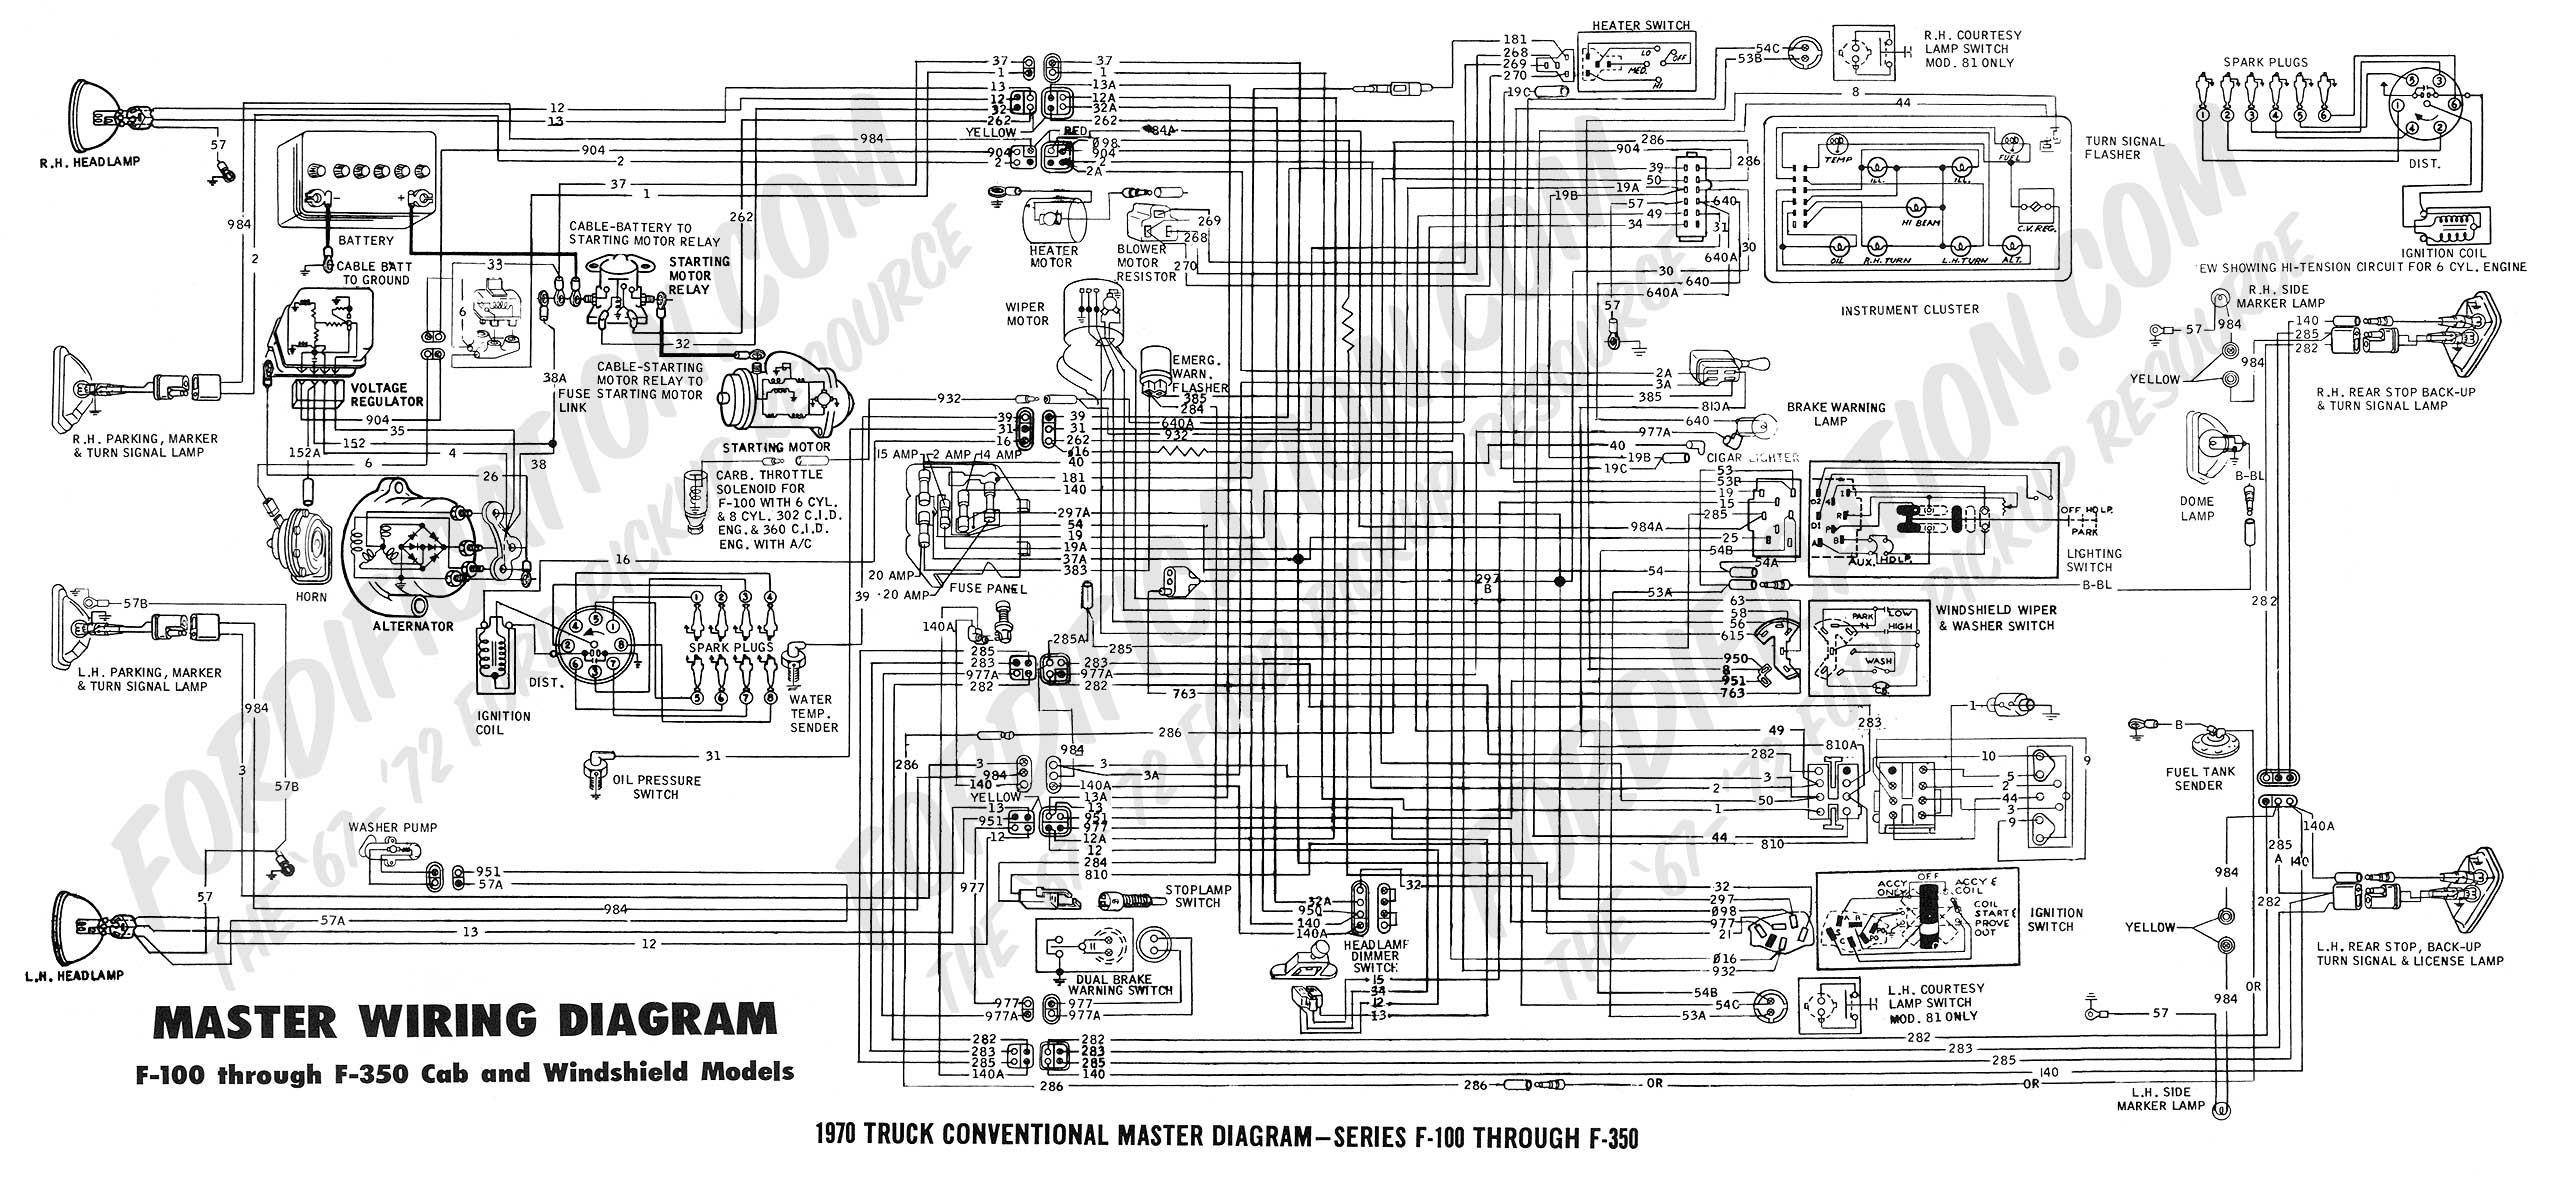 1990 Cadillac Deville Wiring Diagram Library For 2000 Fuse Box Ford Truck Technical Drawings And Schematics Section H Location